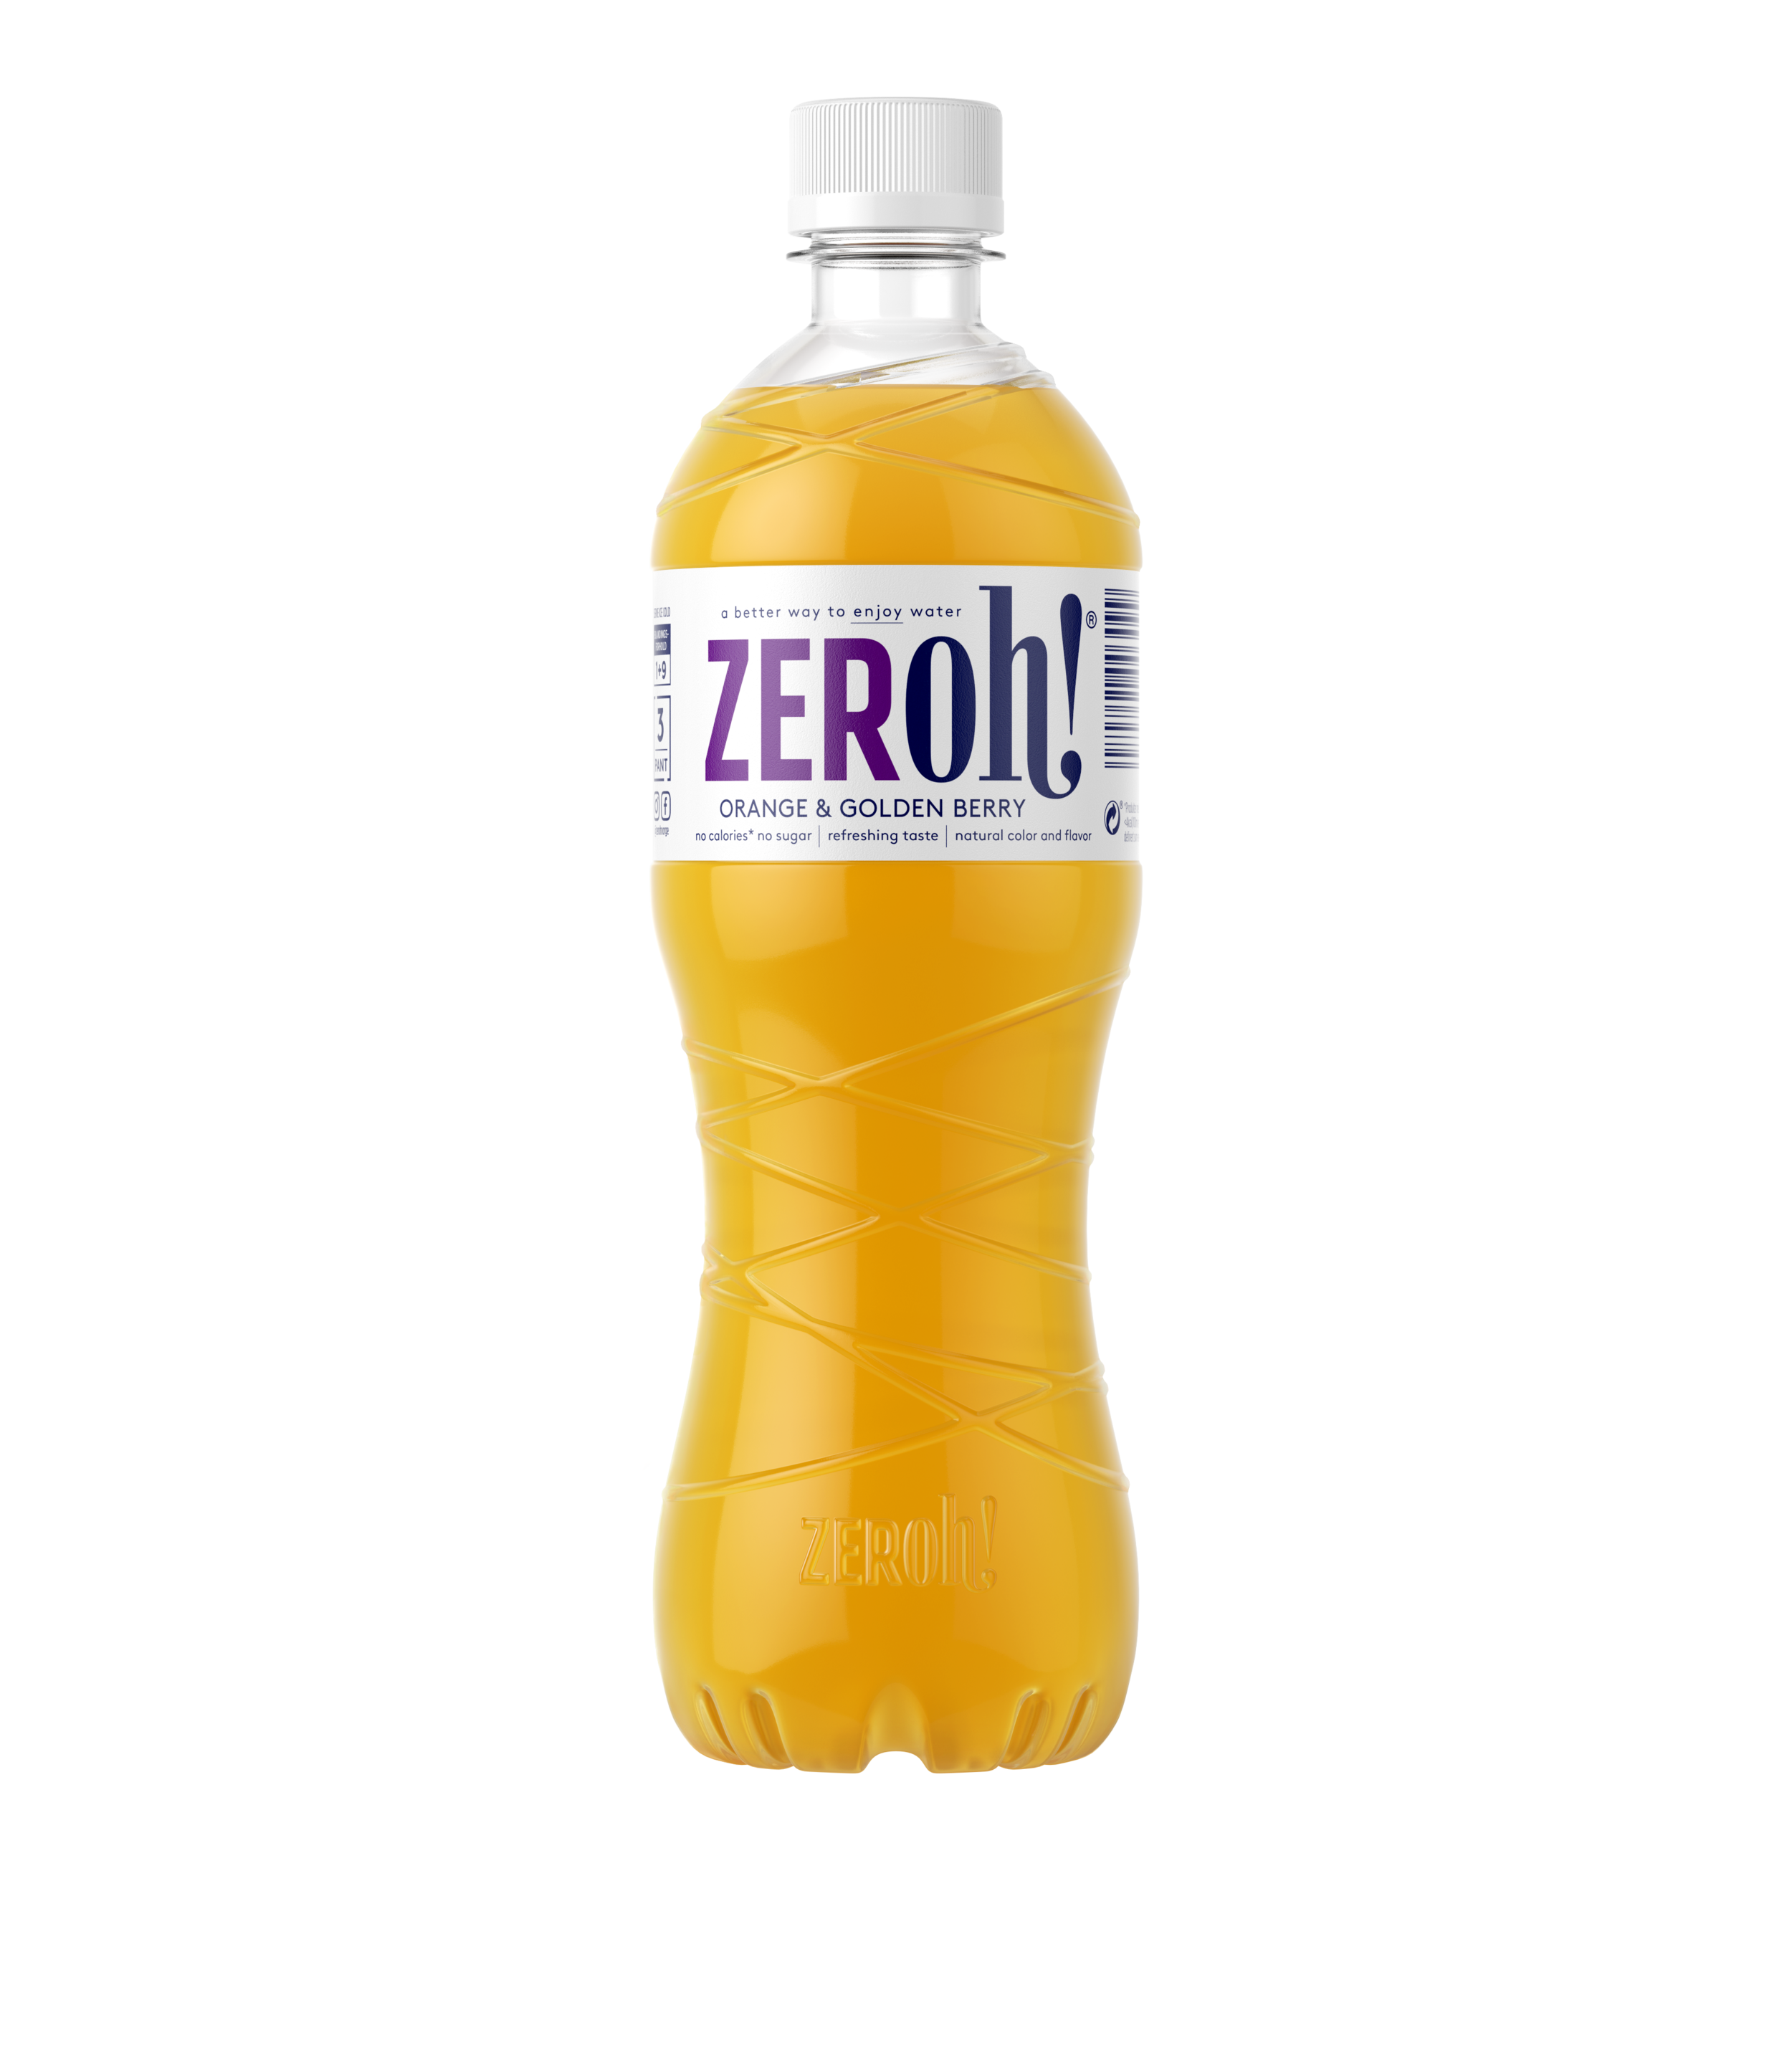 ZERoh! Orange & Golden Berry 2019 3D transparent.png